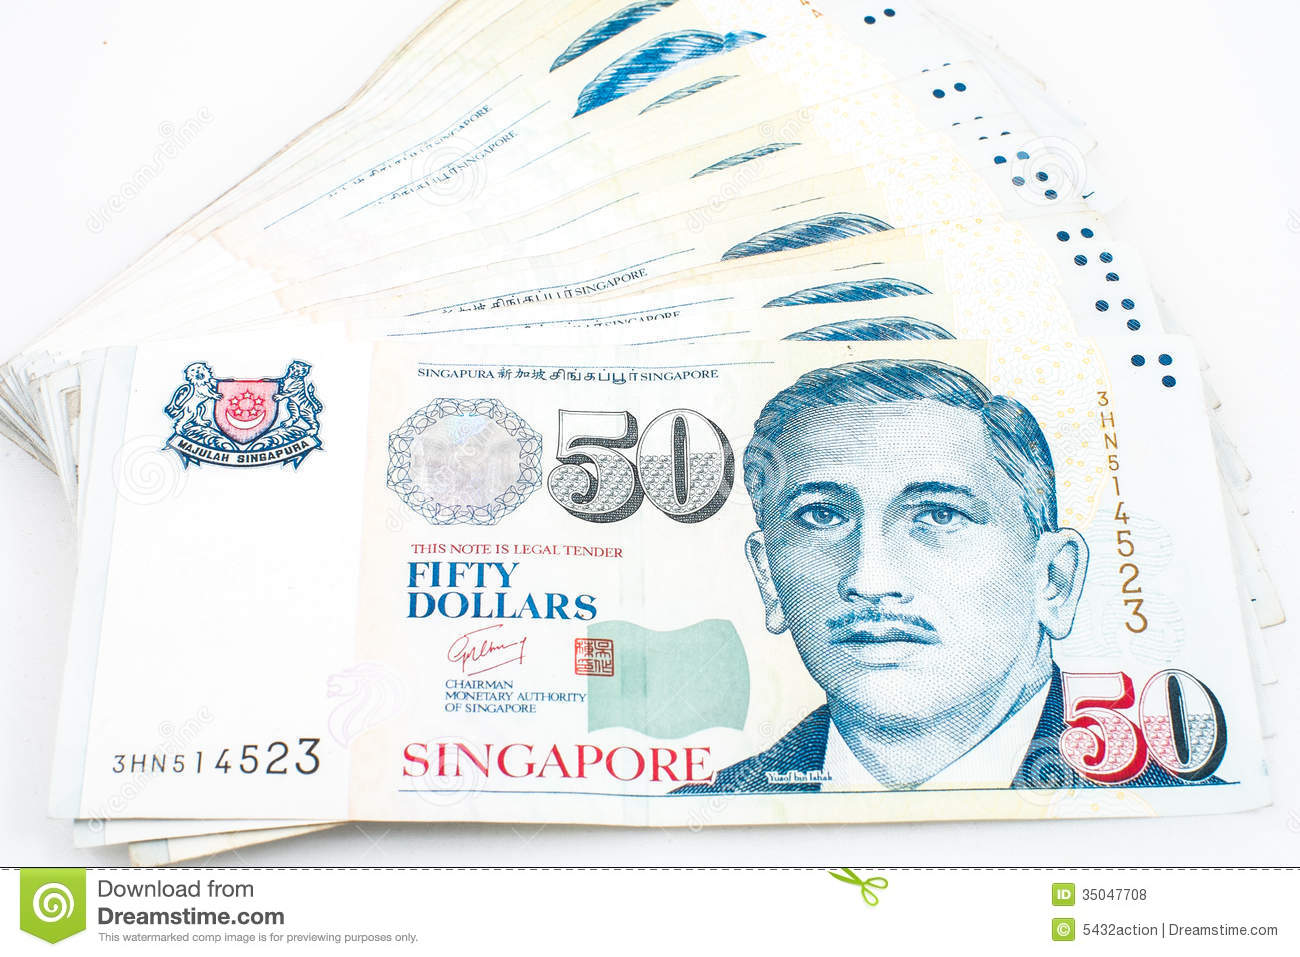 Singapore dollar: the next currency to fall?